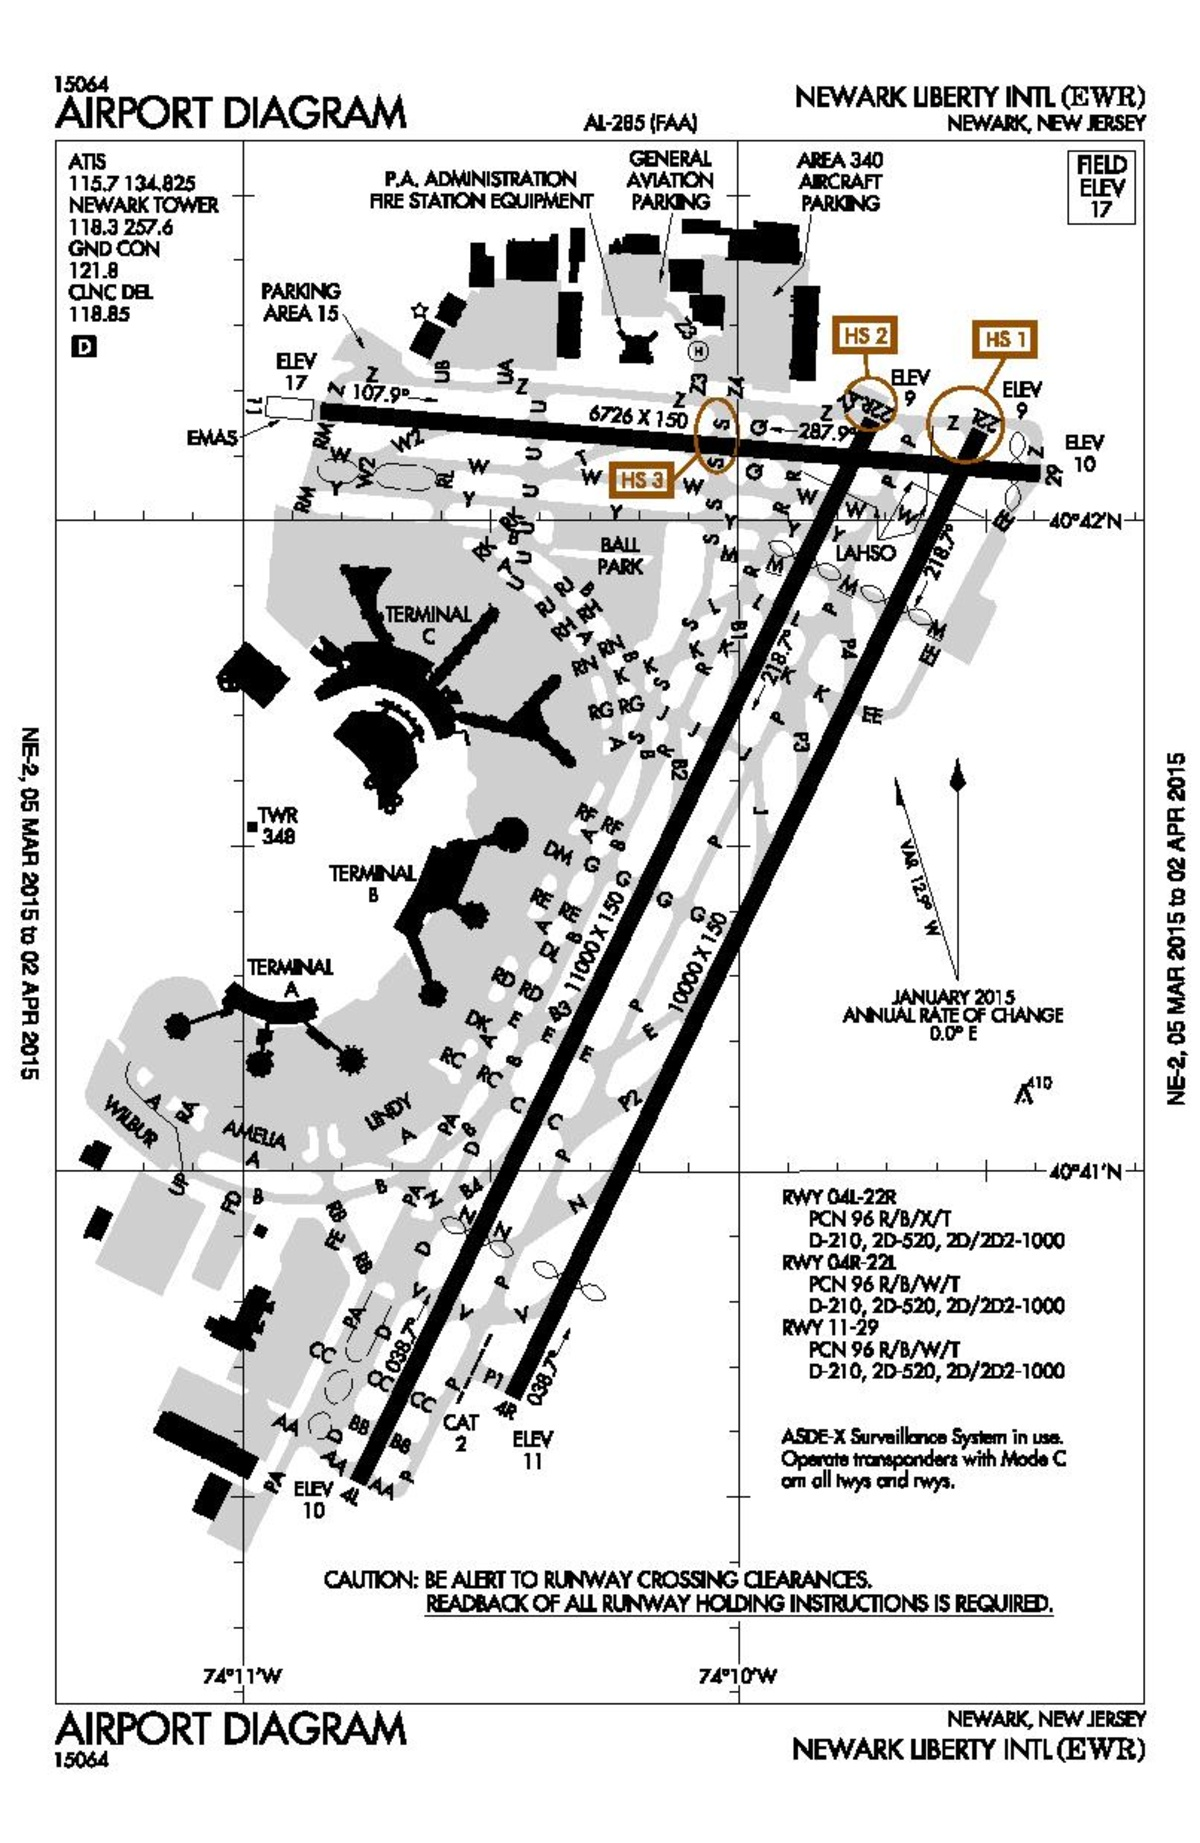 File EWR airport    diagram      pdf     Wikimedia Commons